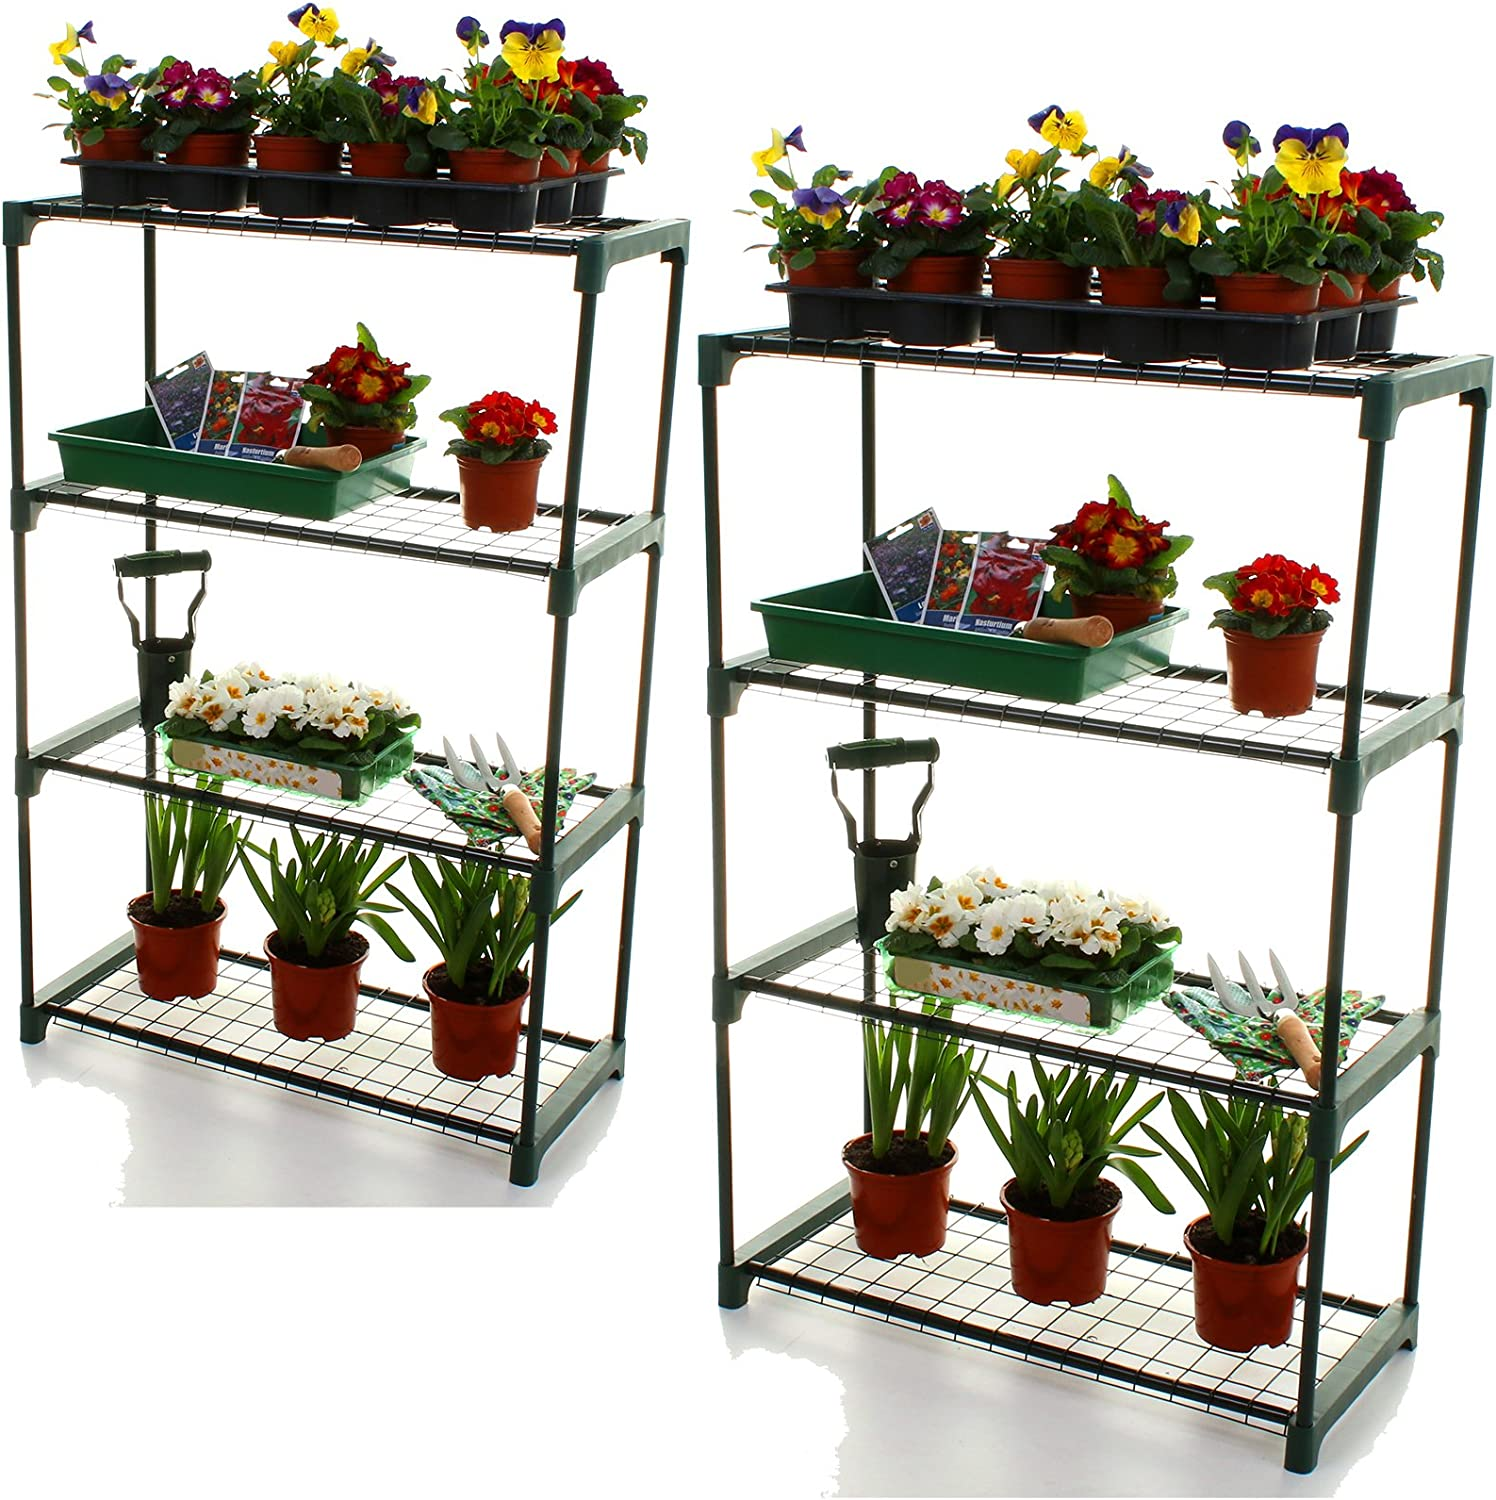 Greenhouse Garden Shelving Unit 2 x 4 Tier Garage Shed Plant Tool Storage New